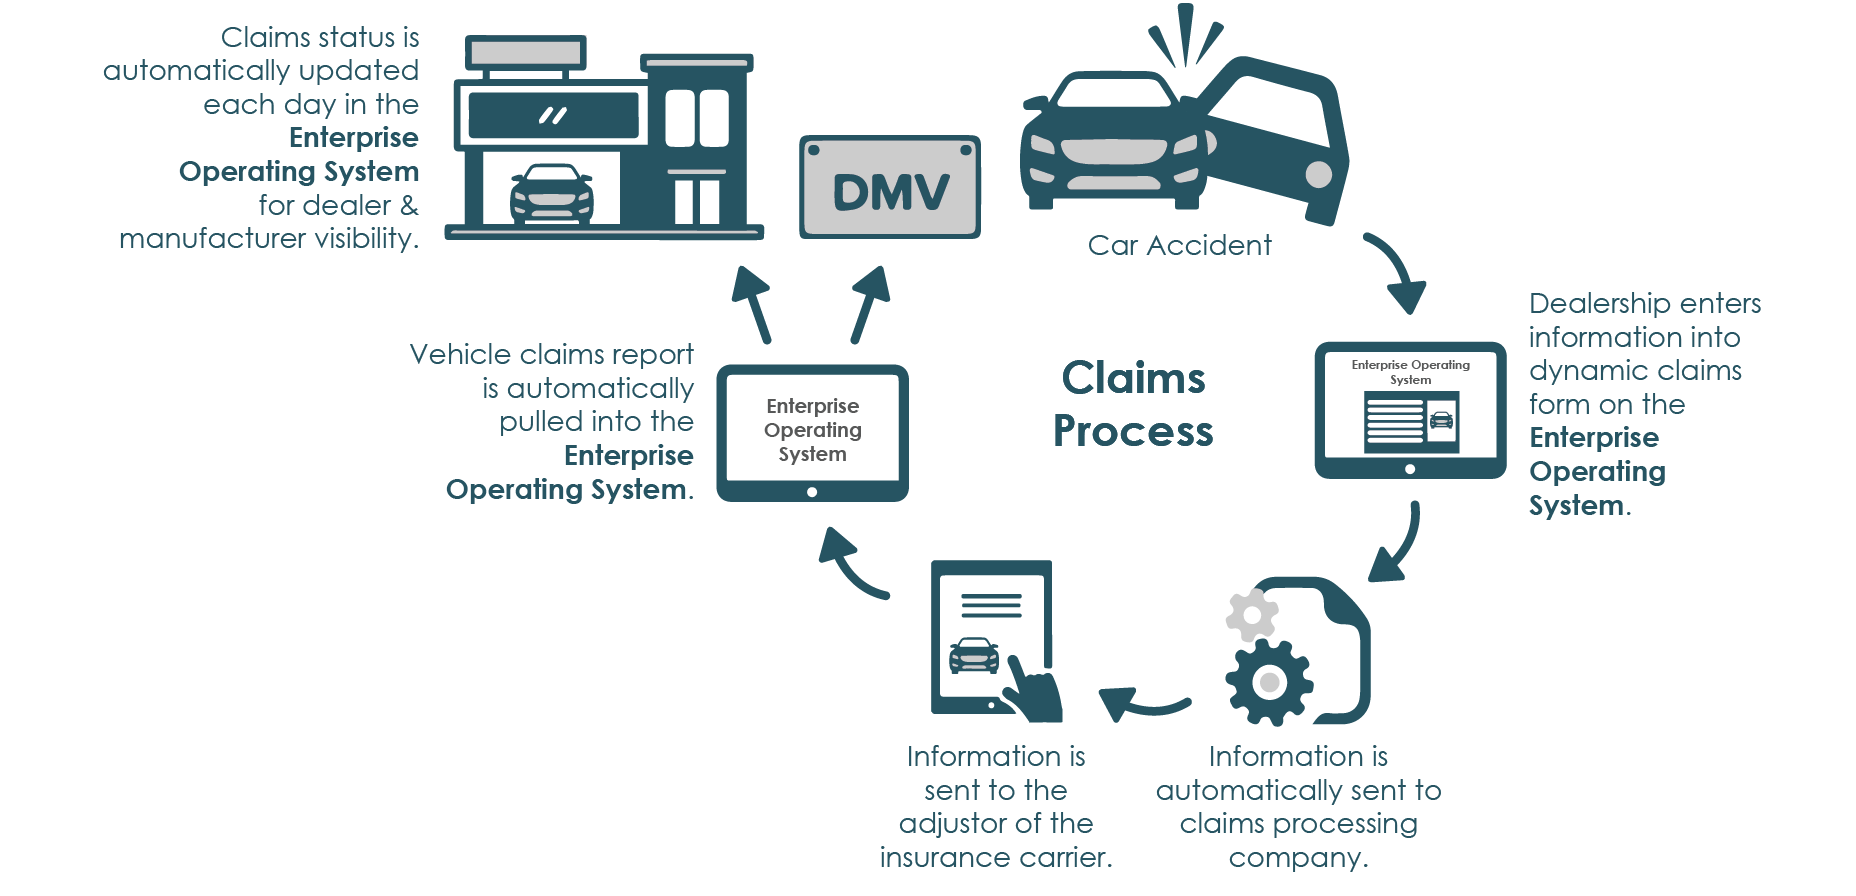 custom solutions solve for pain points in the claims process